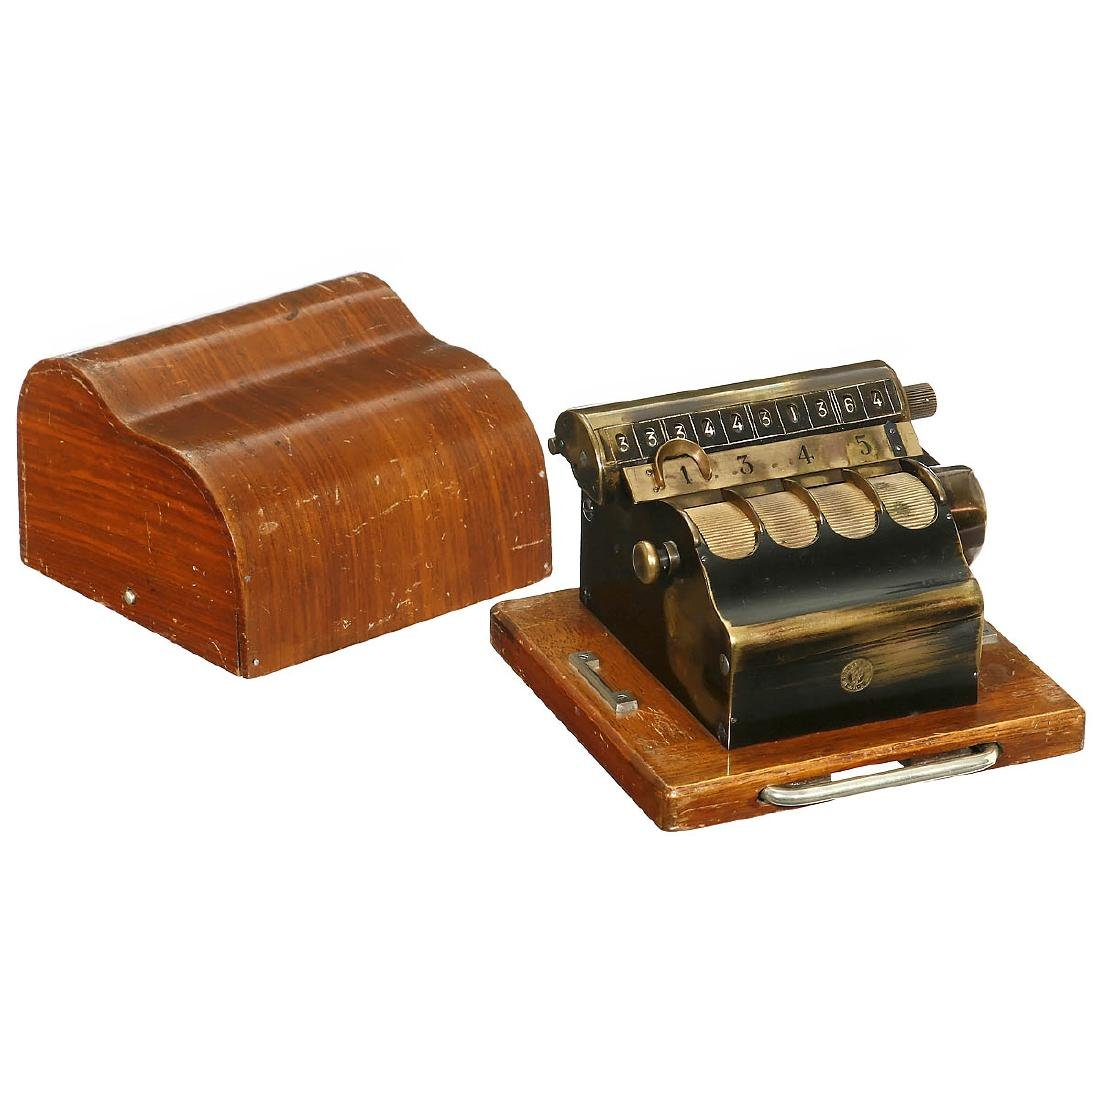 "Bürk's ""Kollektor"" Adding Machine, c. 1910"